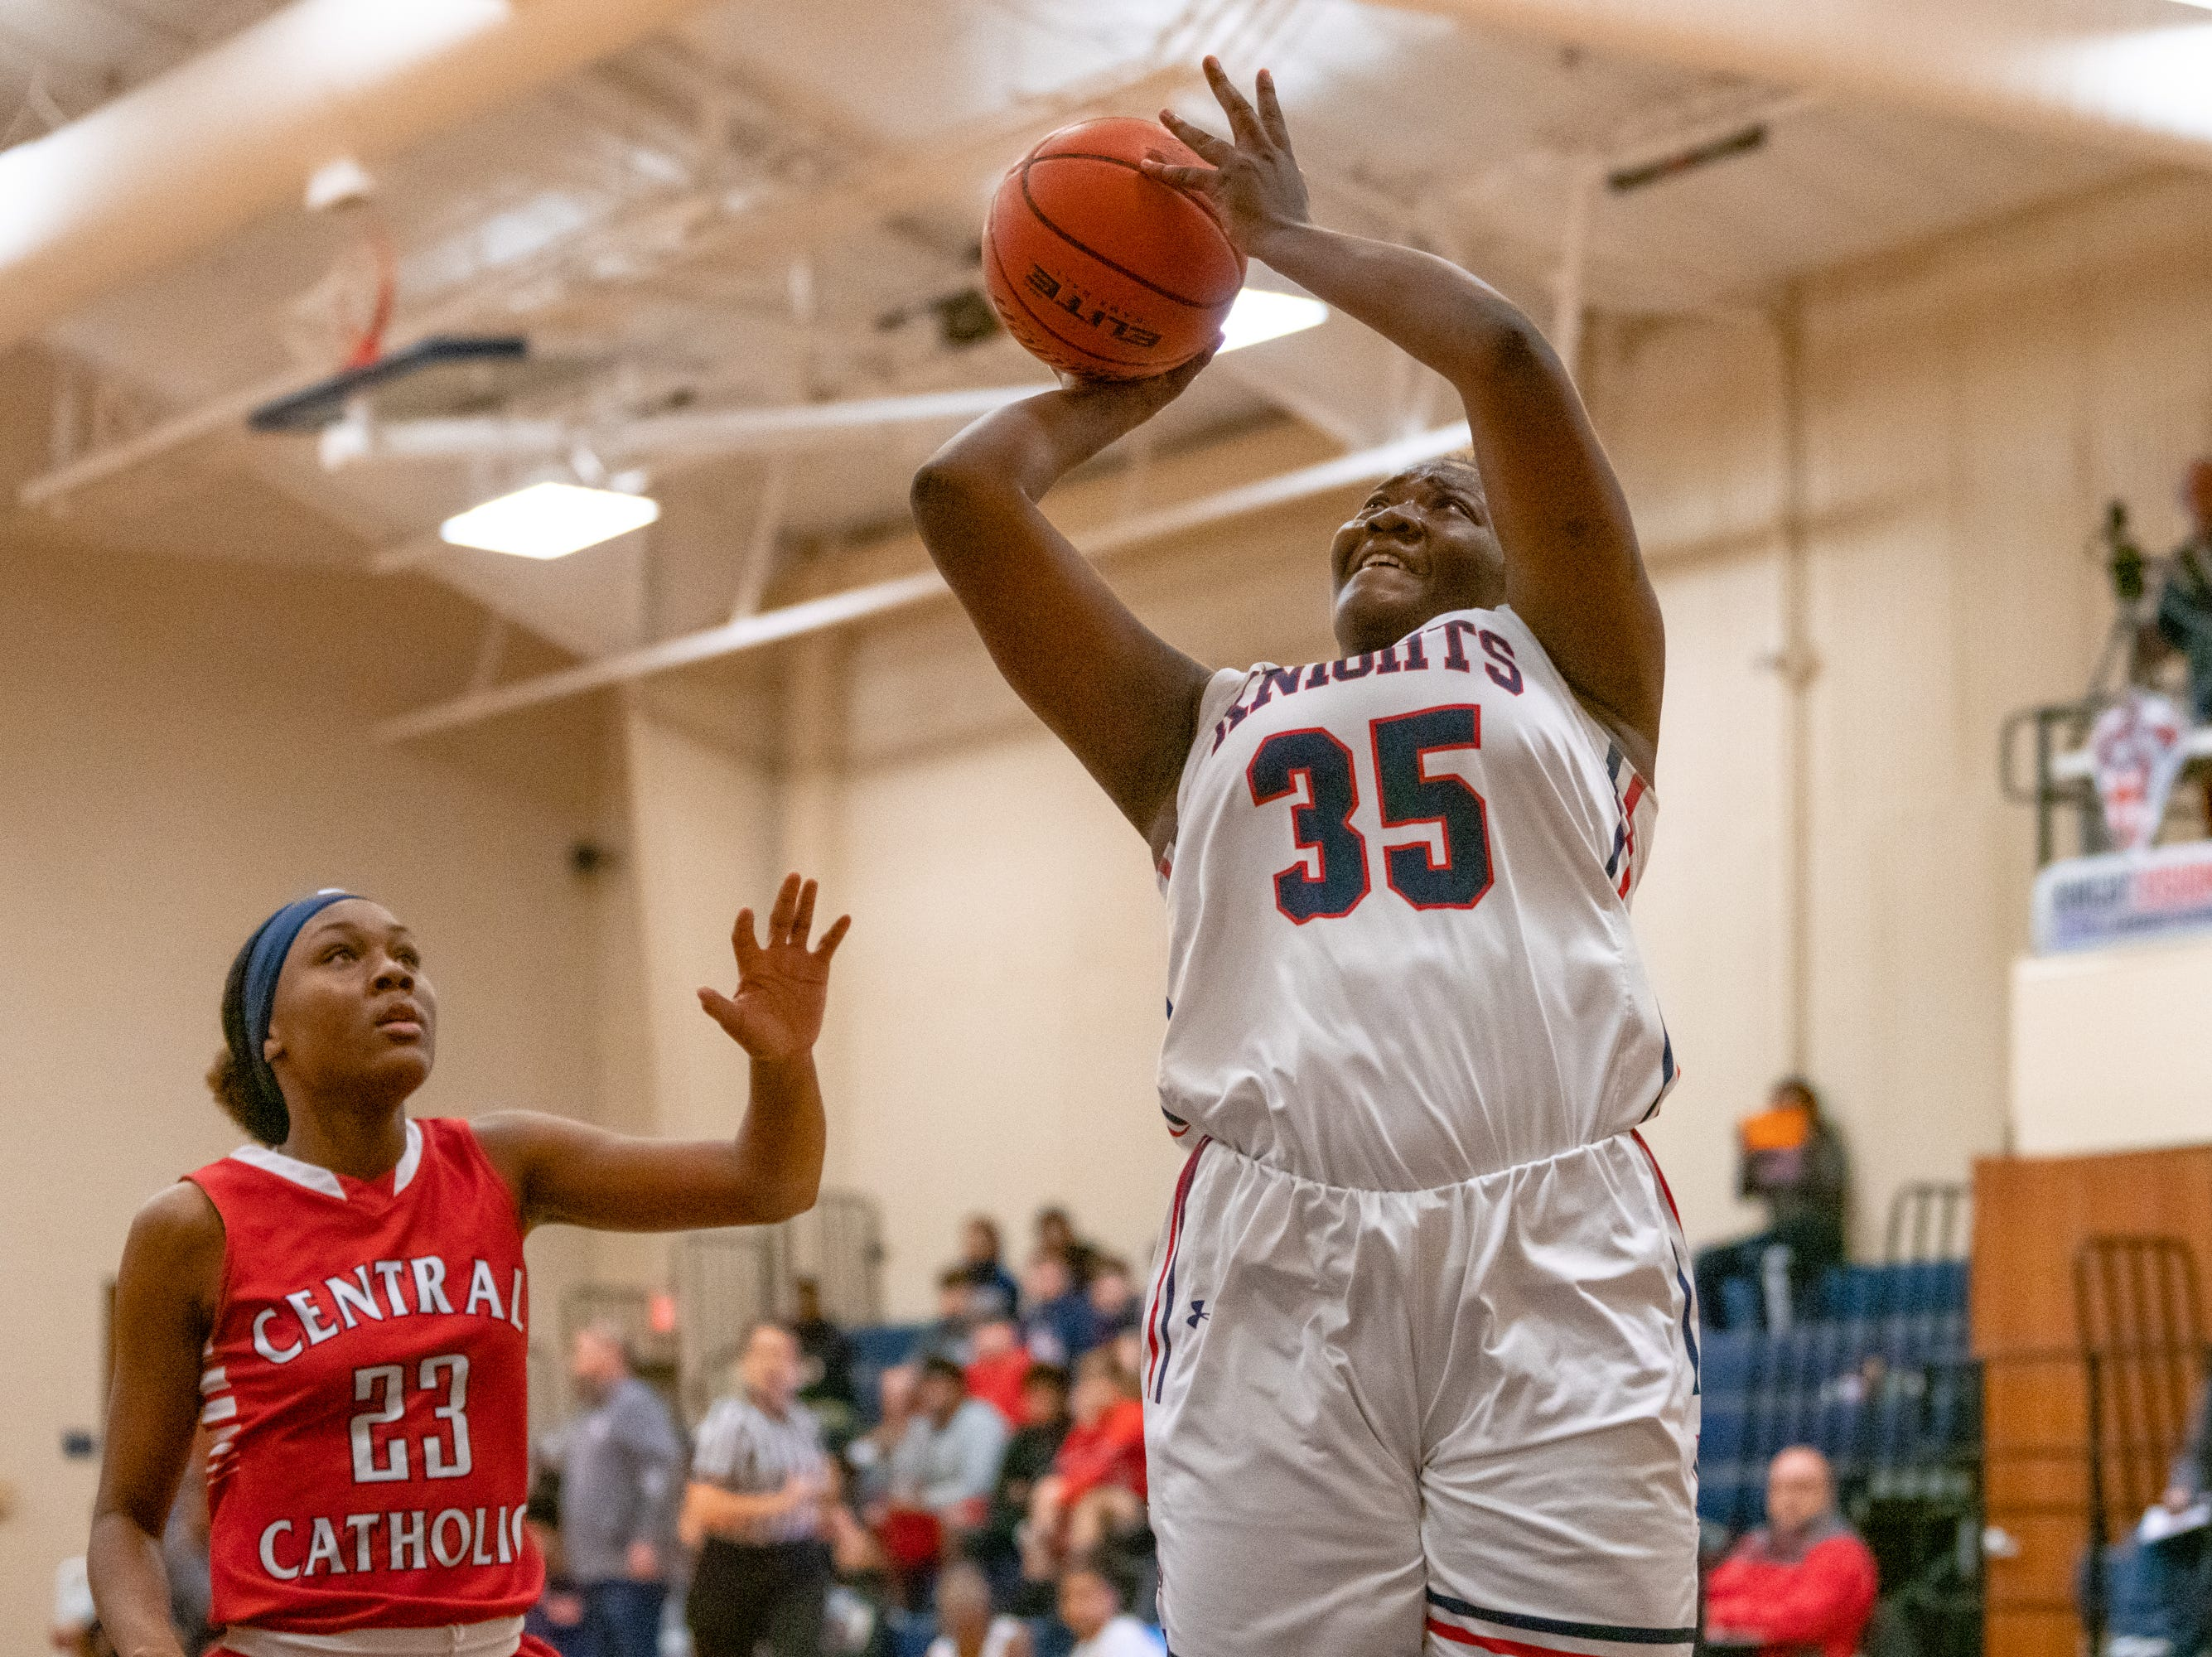 Lafayette Christian's Bré Porter takes a shot from under the goal as the LCA Knights take on the Central Catholic Eagles at home on Thursday, Feb. 21, 2019.